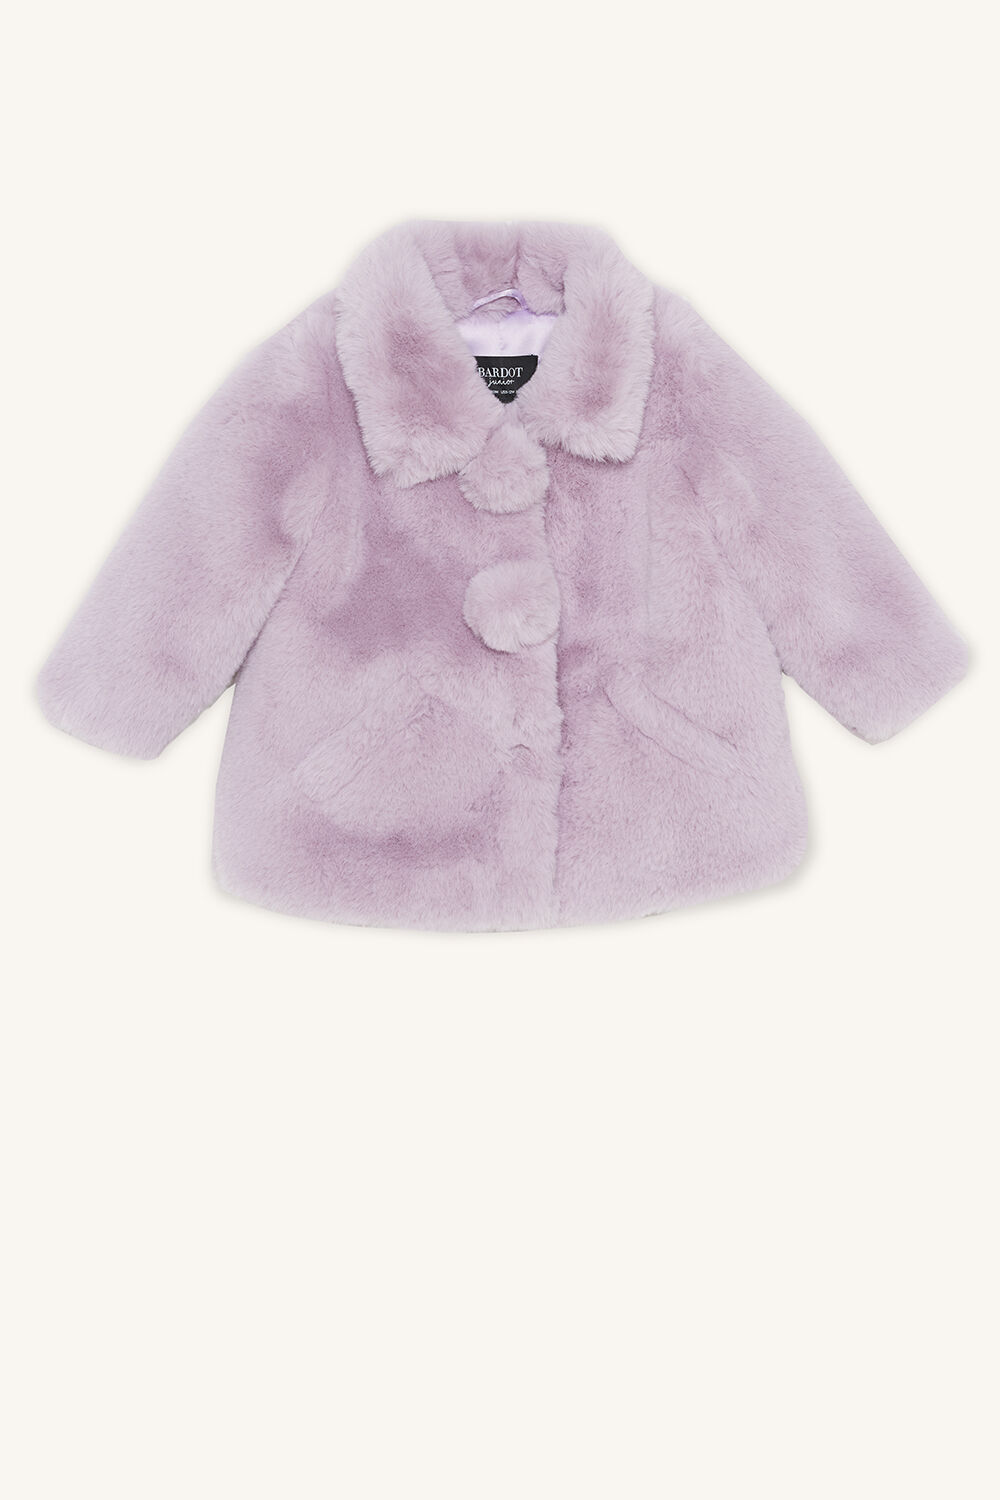 PENN PLUSH JACKET in colour LILAC HINT